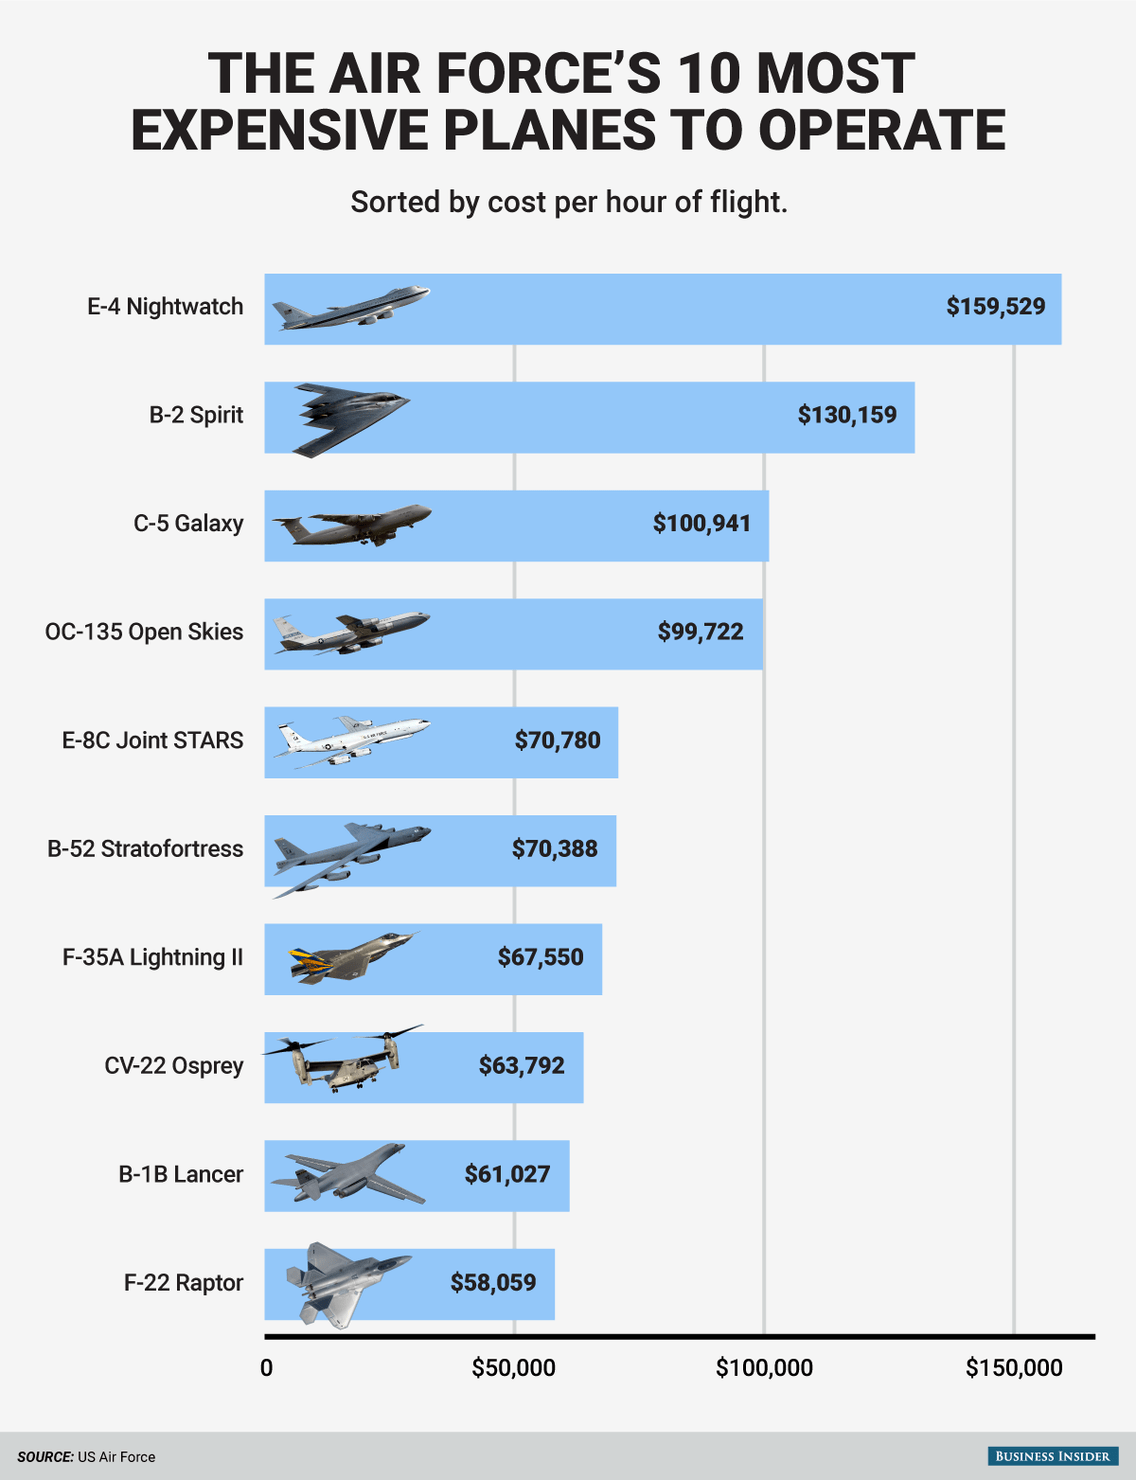 US Air Force's most expensive planes